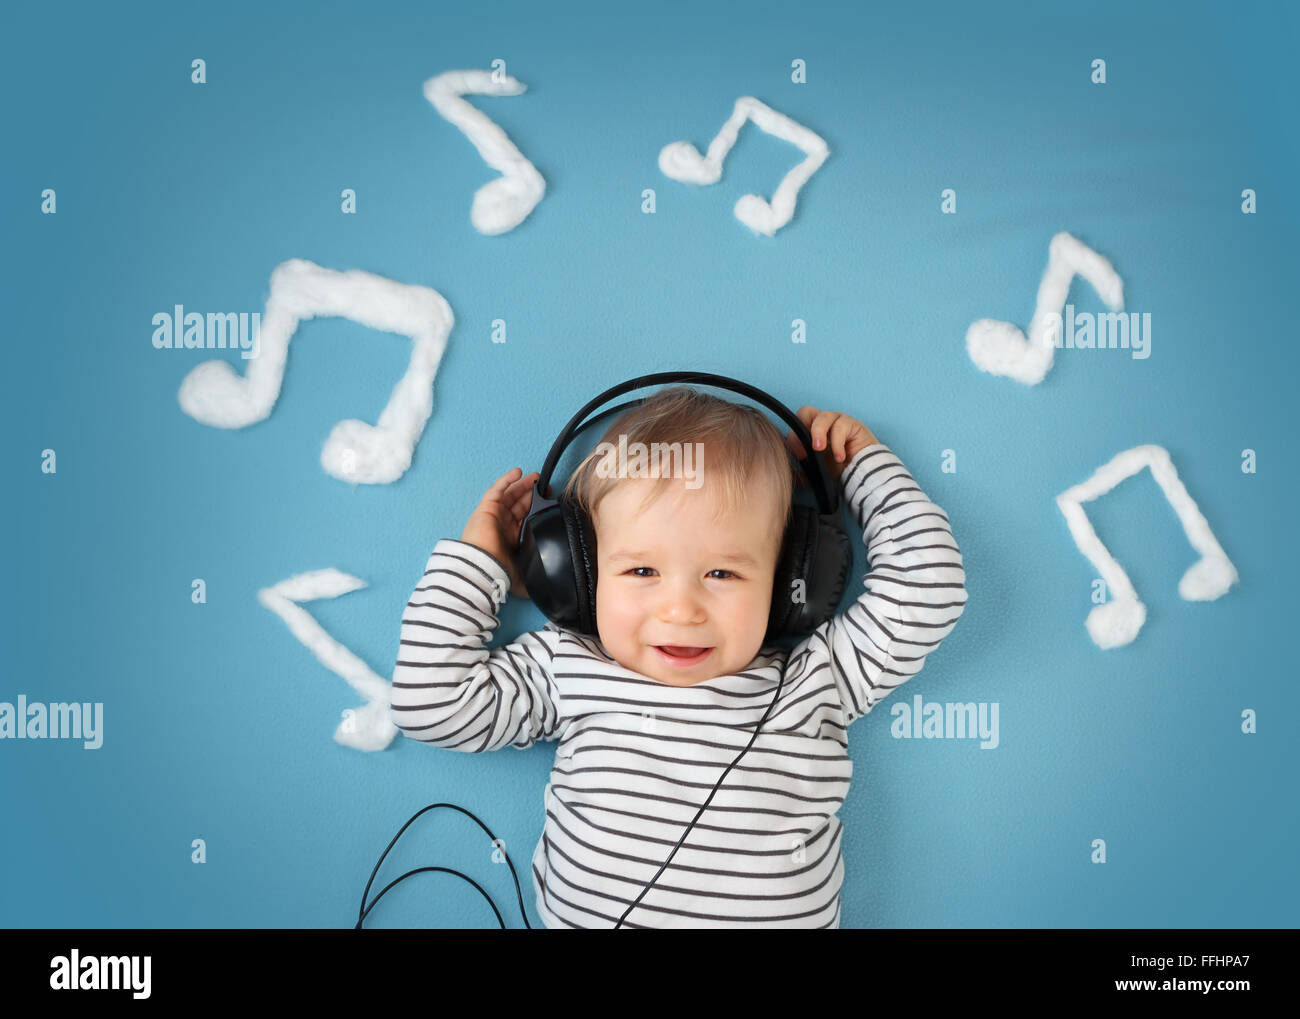 little boy on blue blanket background with headphones - Stock Image